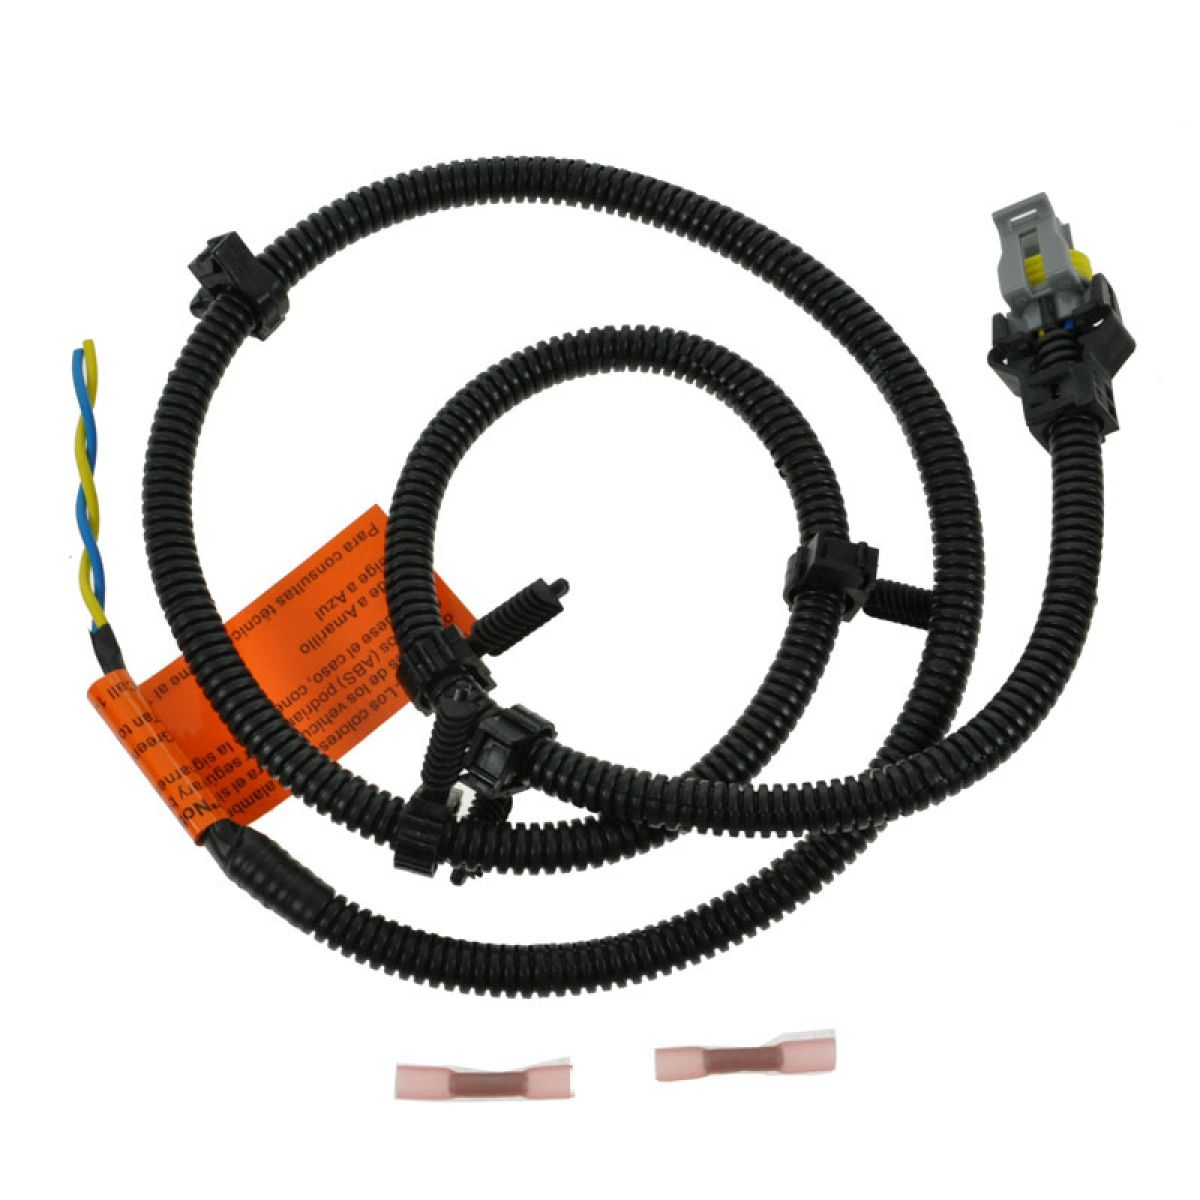 AM 572462664 dorman speed sensor harness with plug & pigtail abs wire wheel GM Wiring Harness Connectors at bayanpartner.co